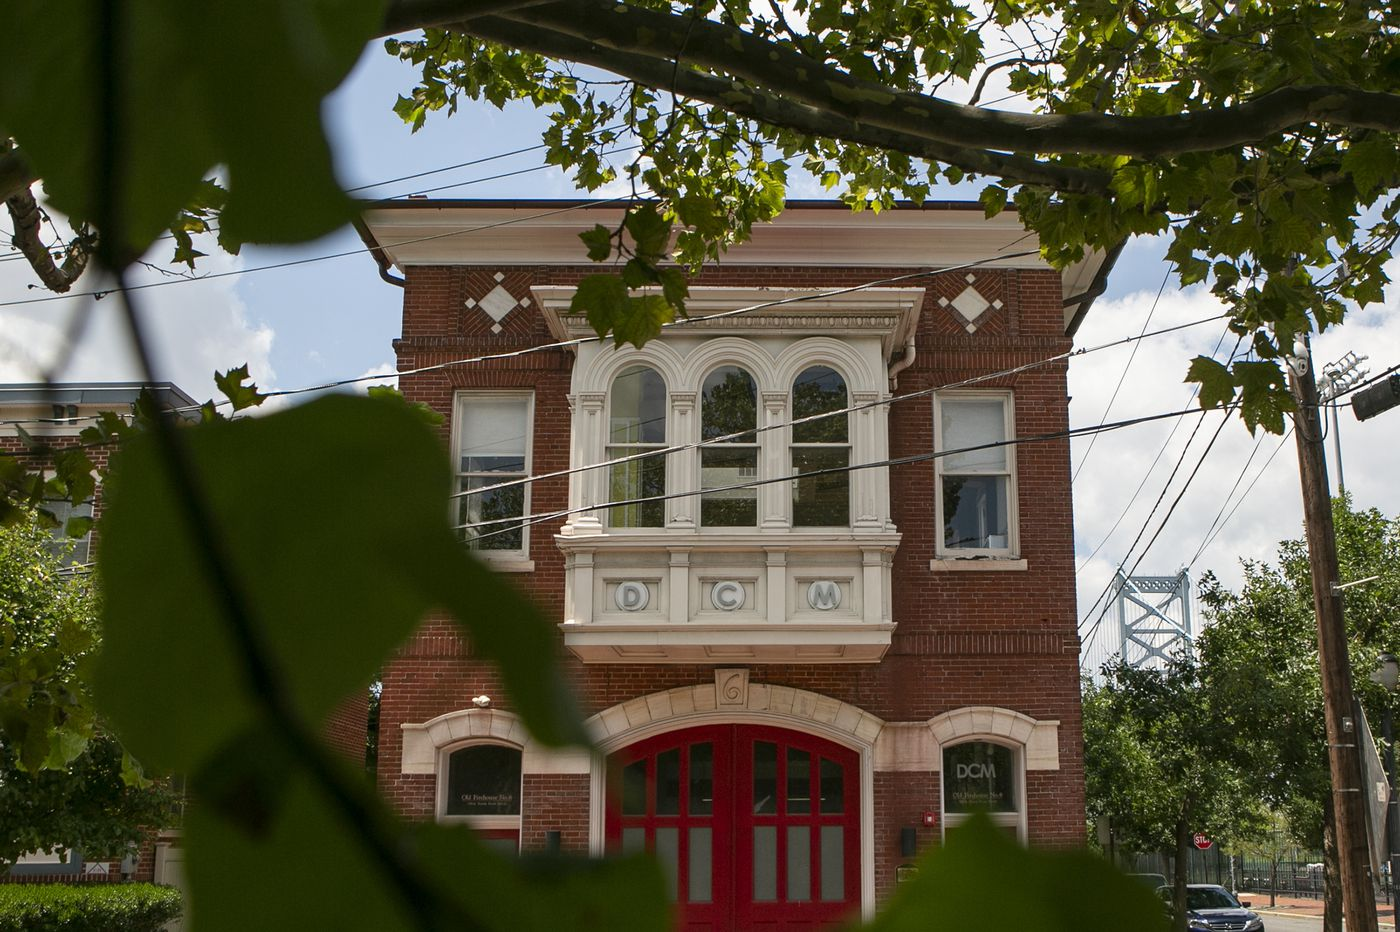 An old firehouse, not tax breaks, brought this company to Camden | Inga Saffron